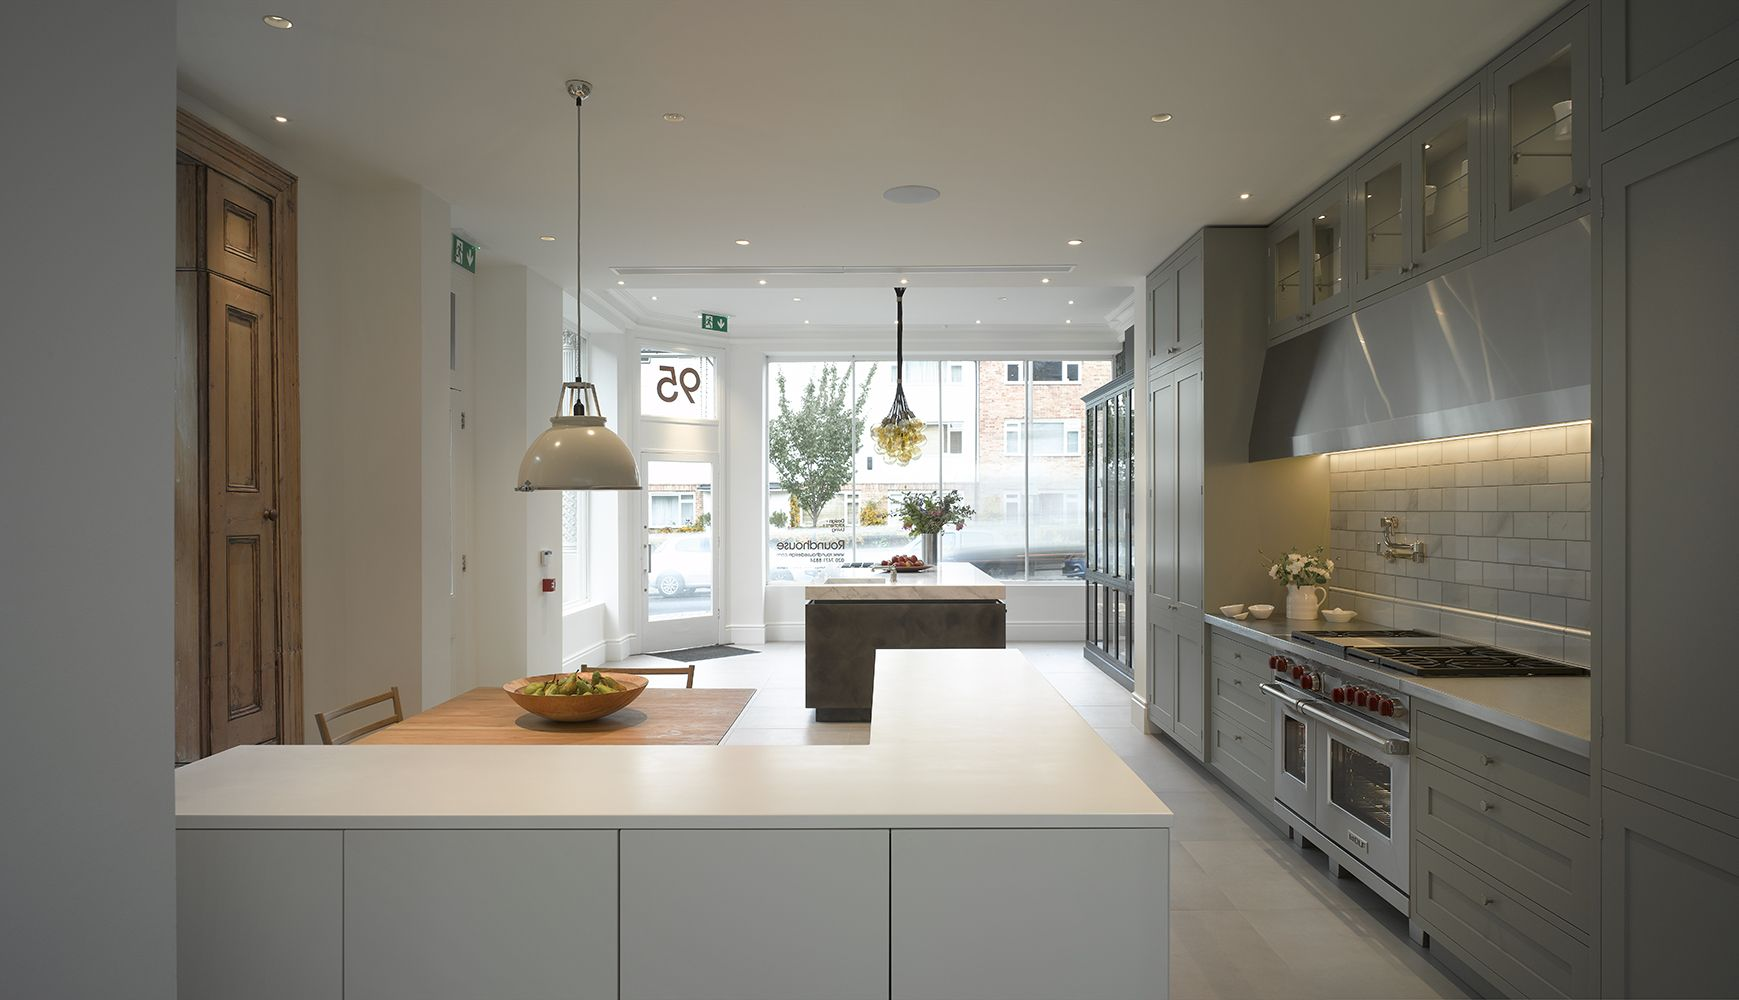 Storage drawers in roundhouse bespoke kitchen as seen in clapham ...